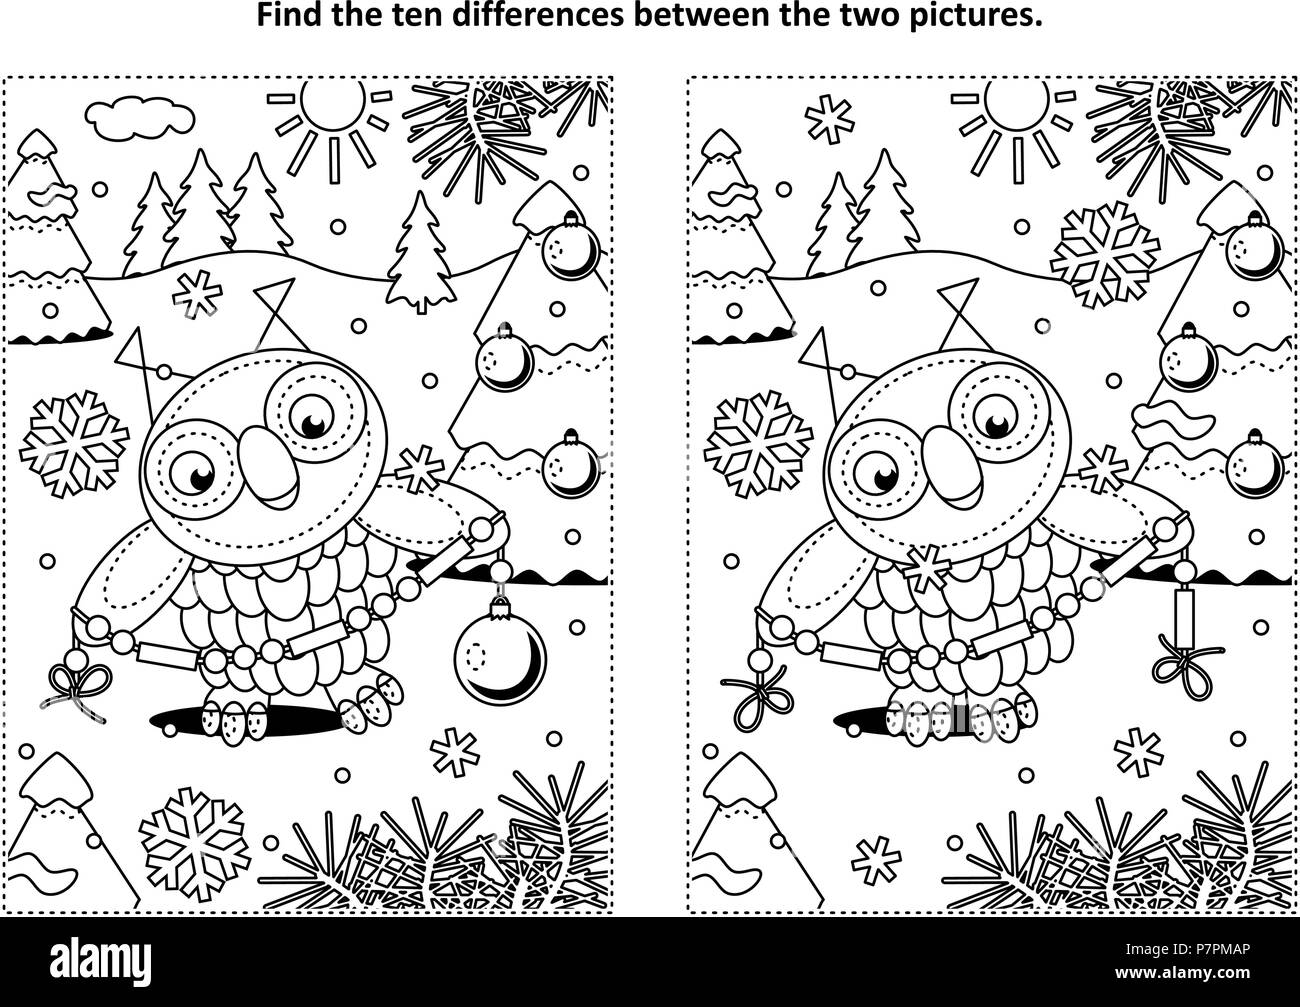 winter holidays new year or christmas themed find the ten differences picture puzzle and coloring page with owl holding glass beads garland